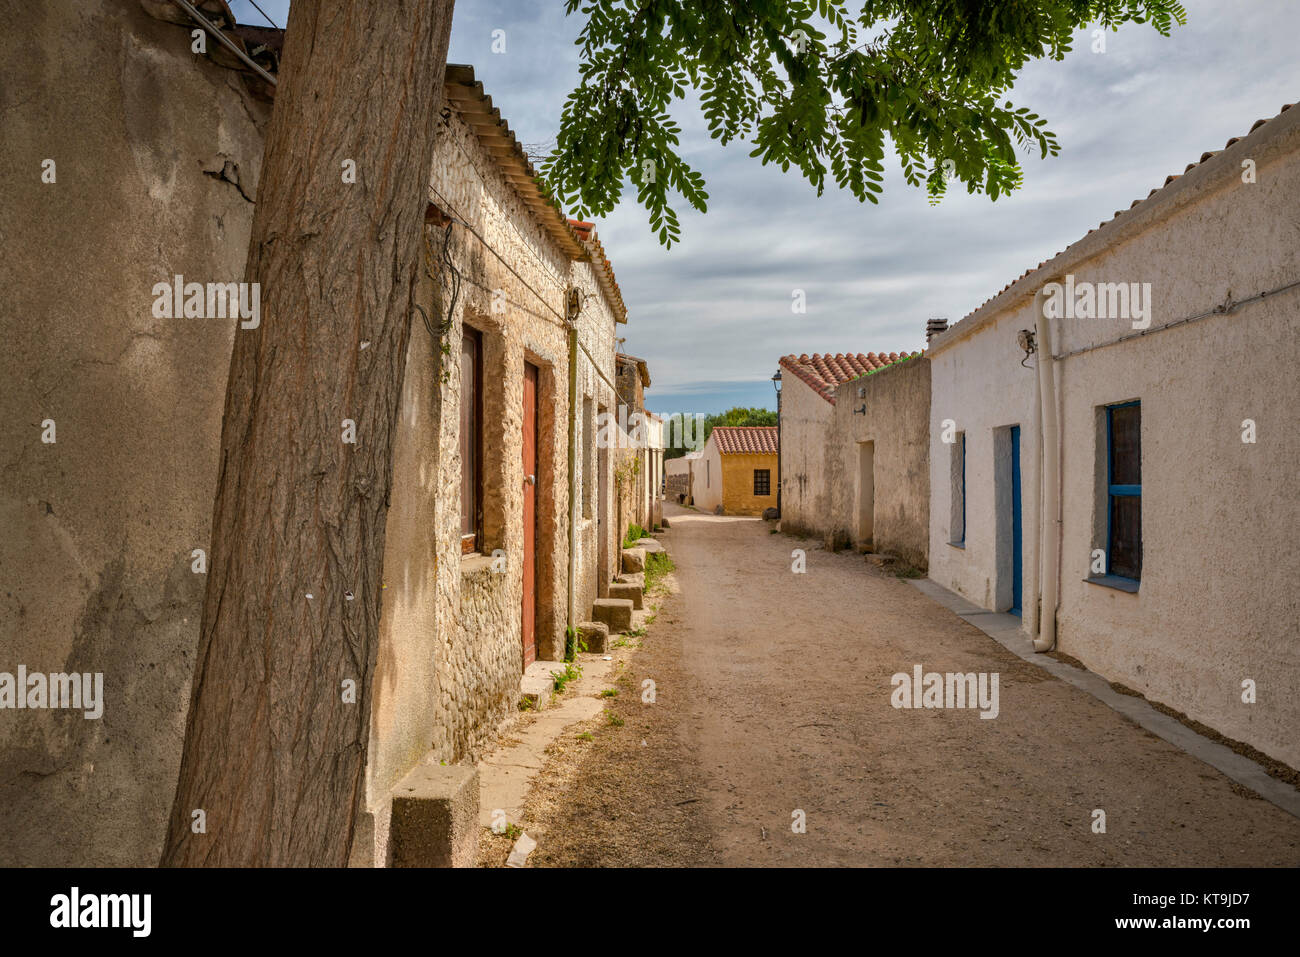 Domigheddas (little houses) in a deserted village of San Salvatore, Sinis Peninsula, municipality of Cabras, Oristano - Stock Image